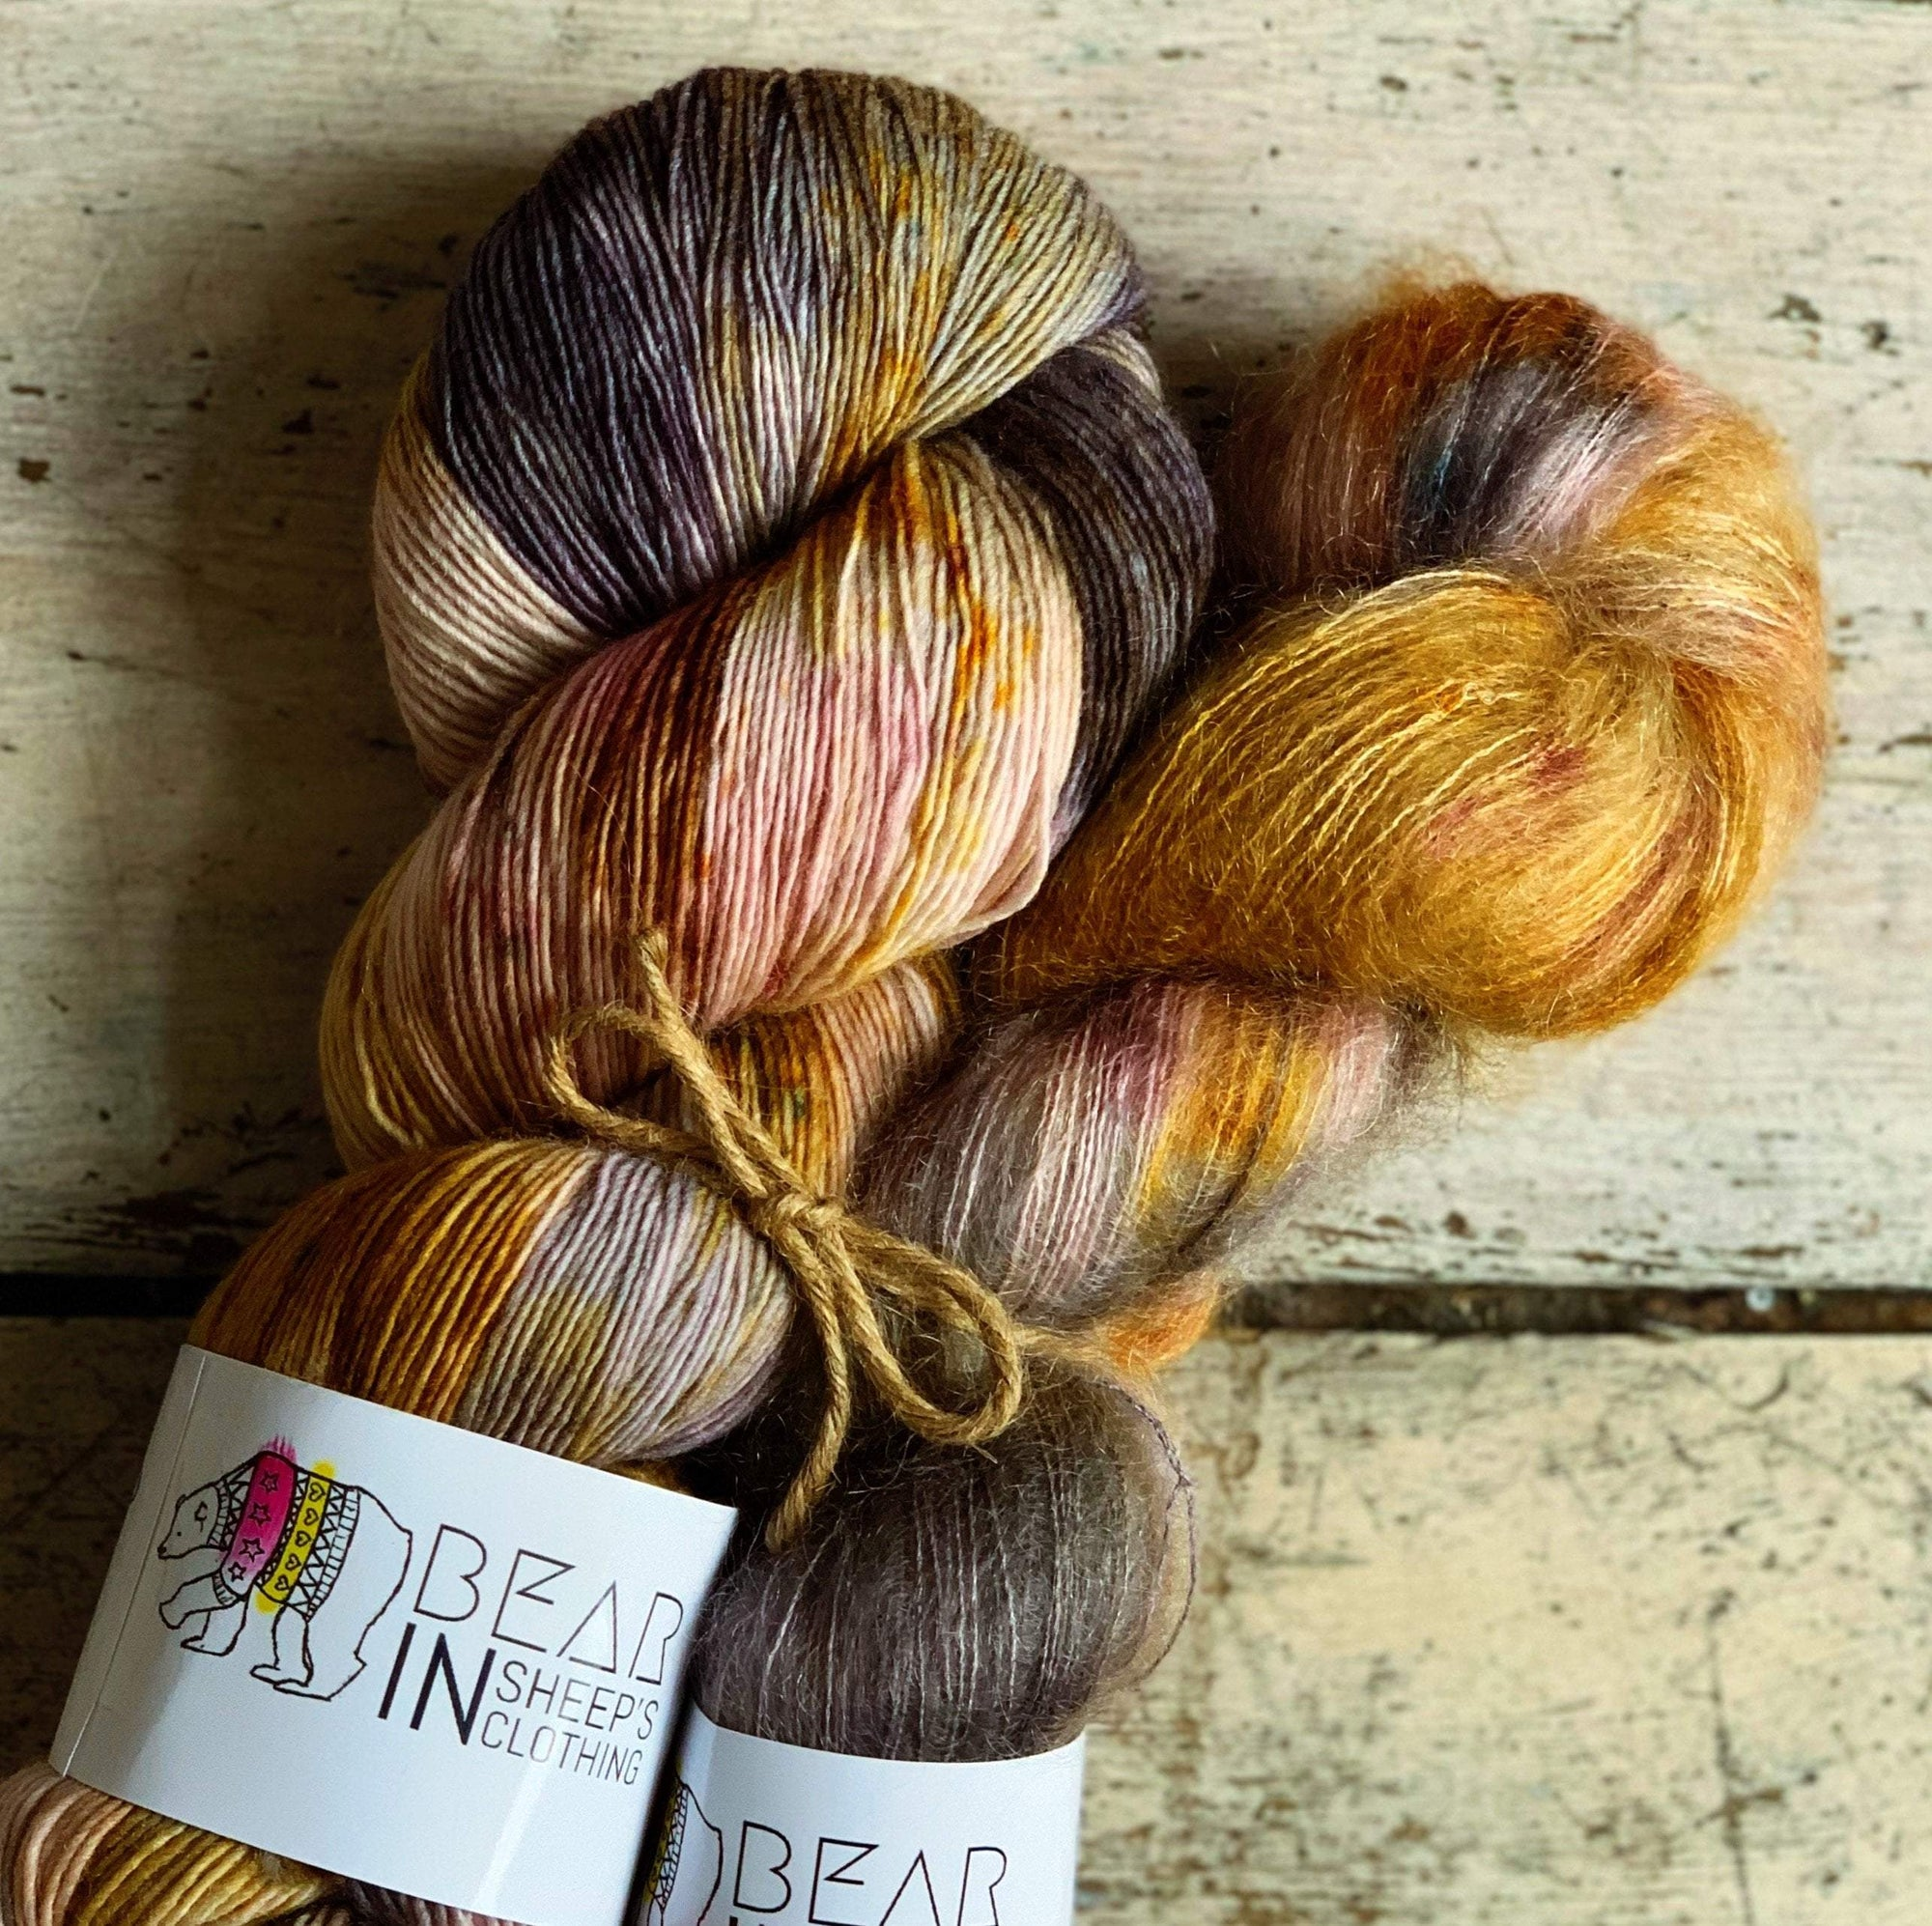 Bear Kit: Learning to Cry Bear In Sheep's Clothing Yarn Bohemian Cry